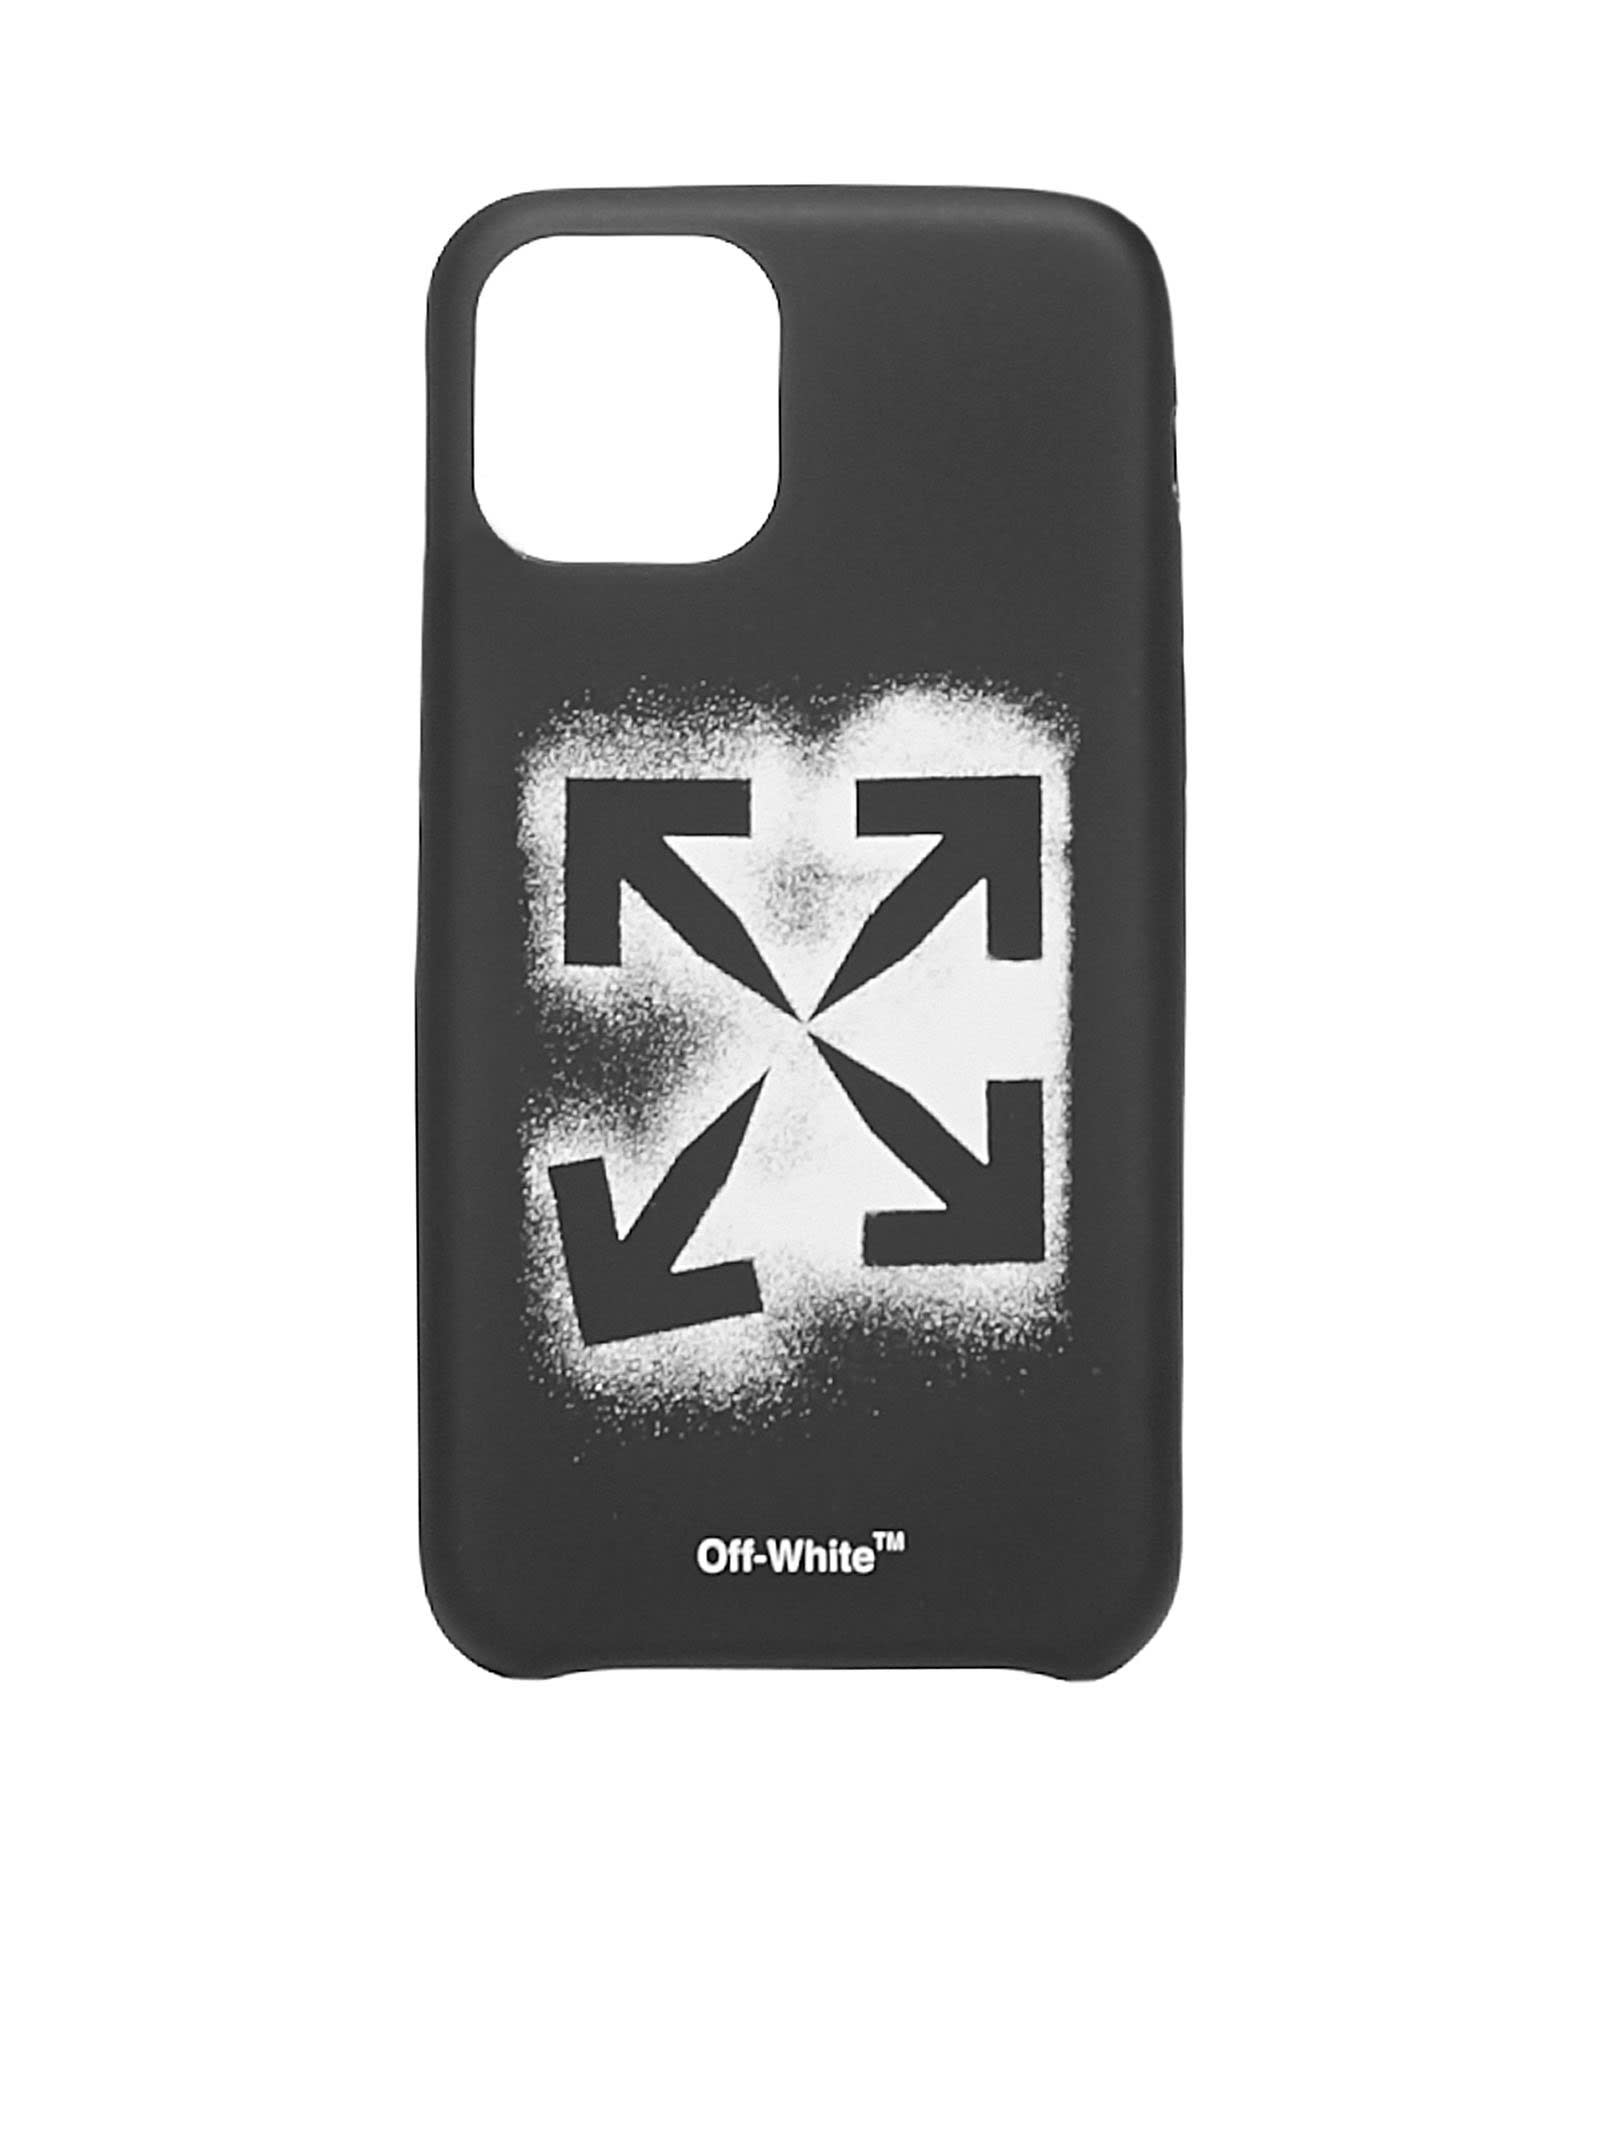 Off-White Hi-Tech Accessory